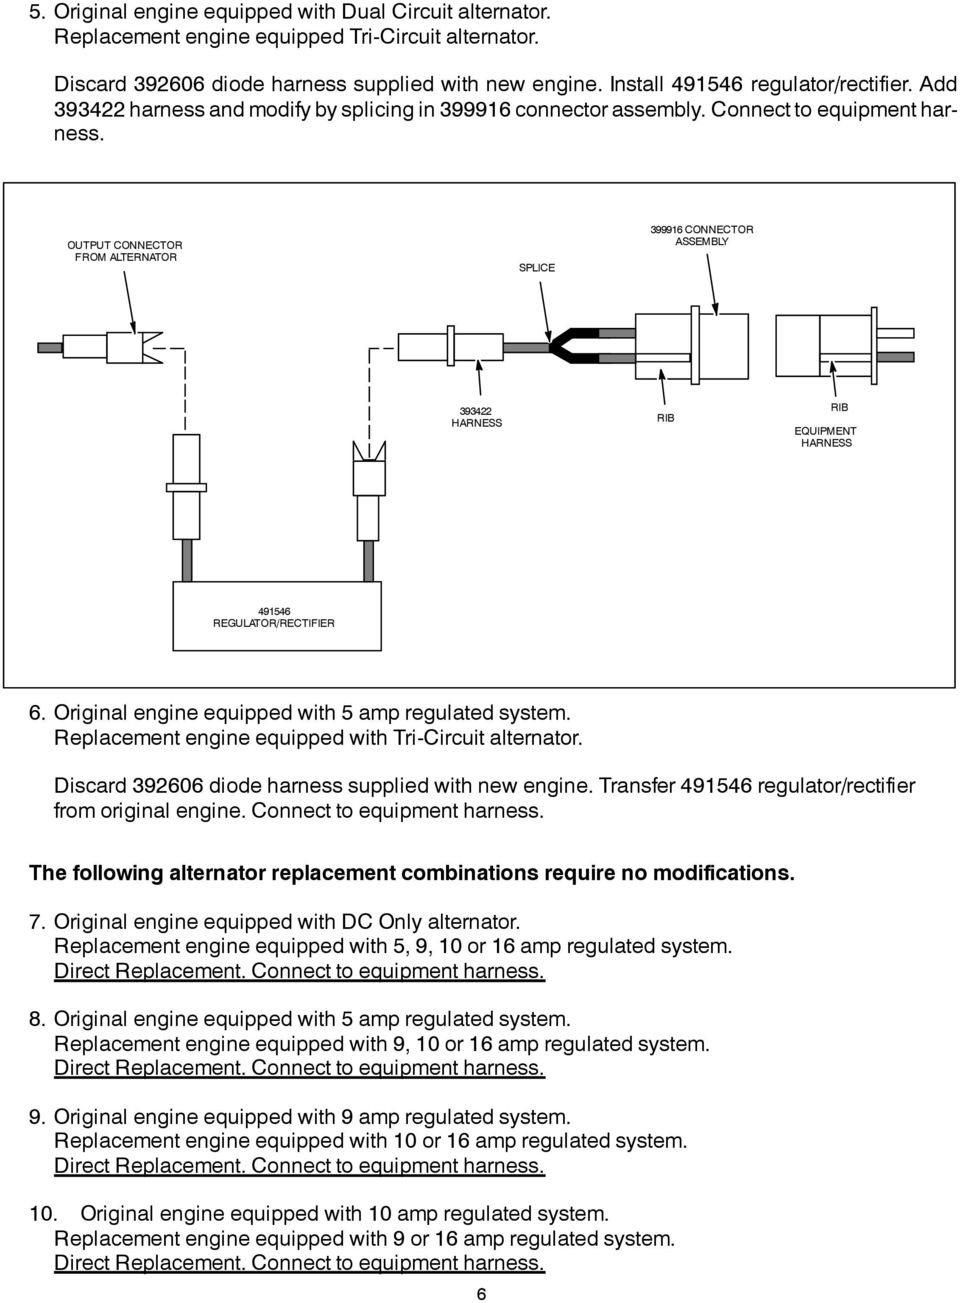 Alternator Identification Pdf Rectifier Regulator Schematic Original Engine Equipped With Amp Regulated System Replacement Tricircuit Discard